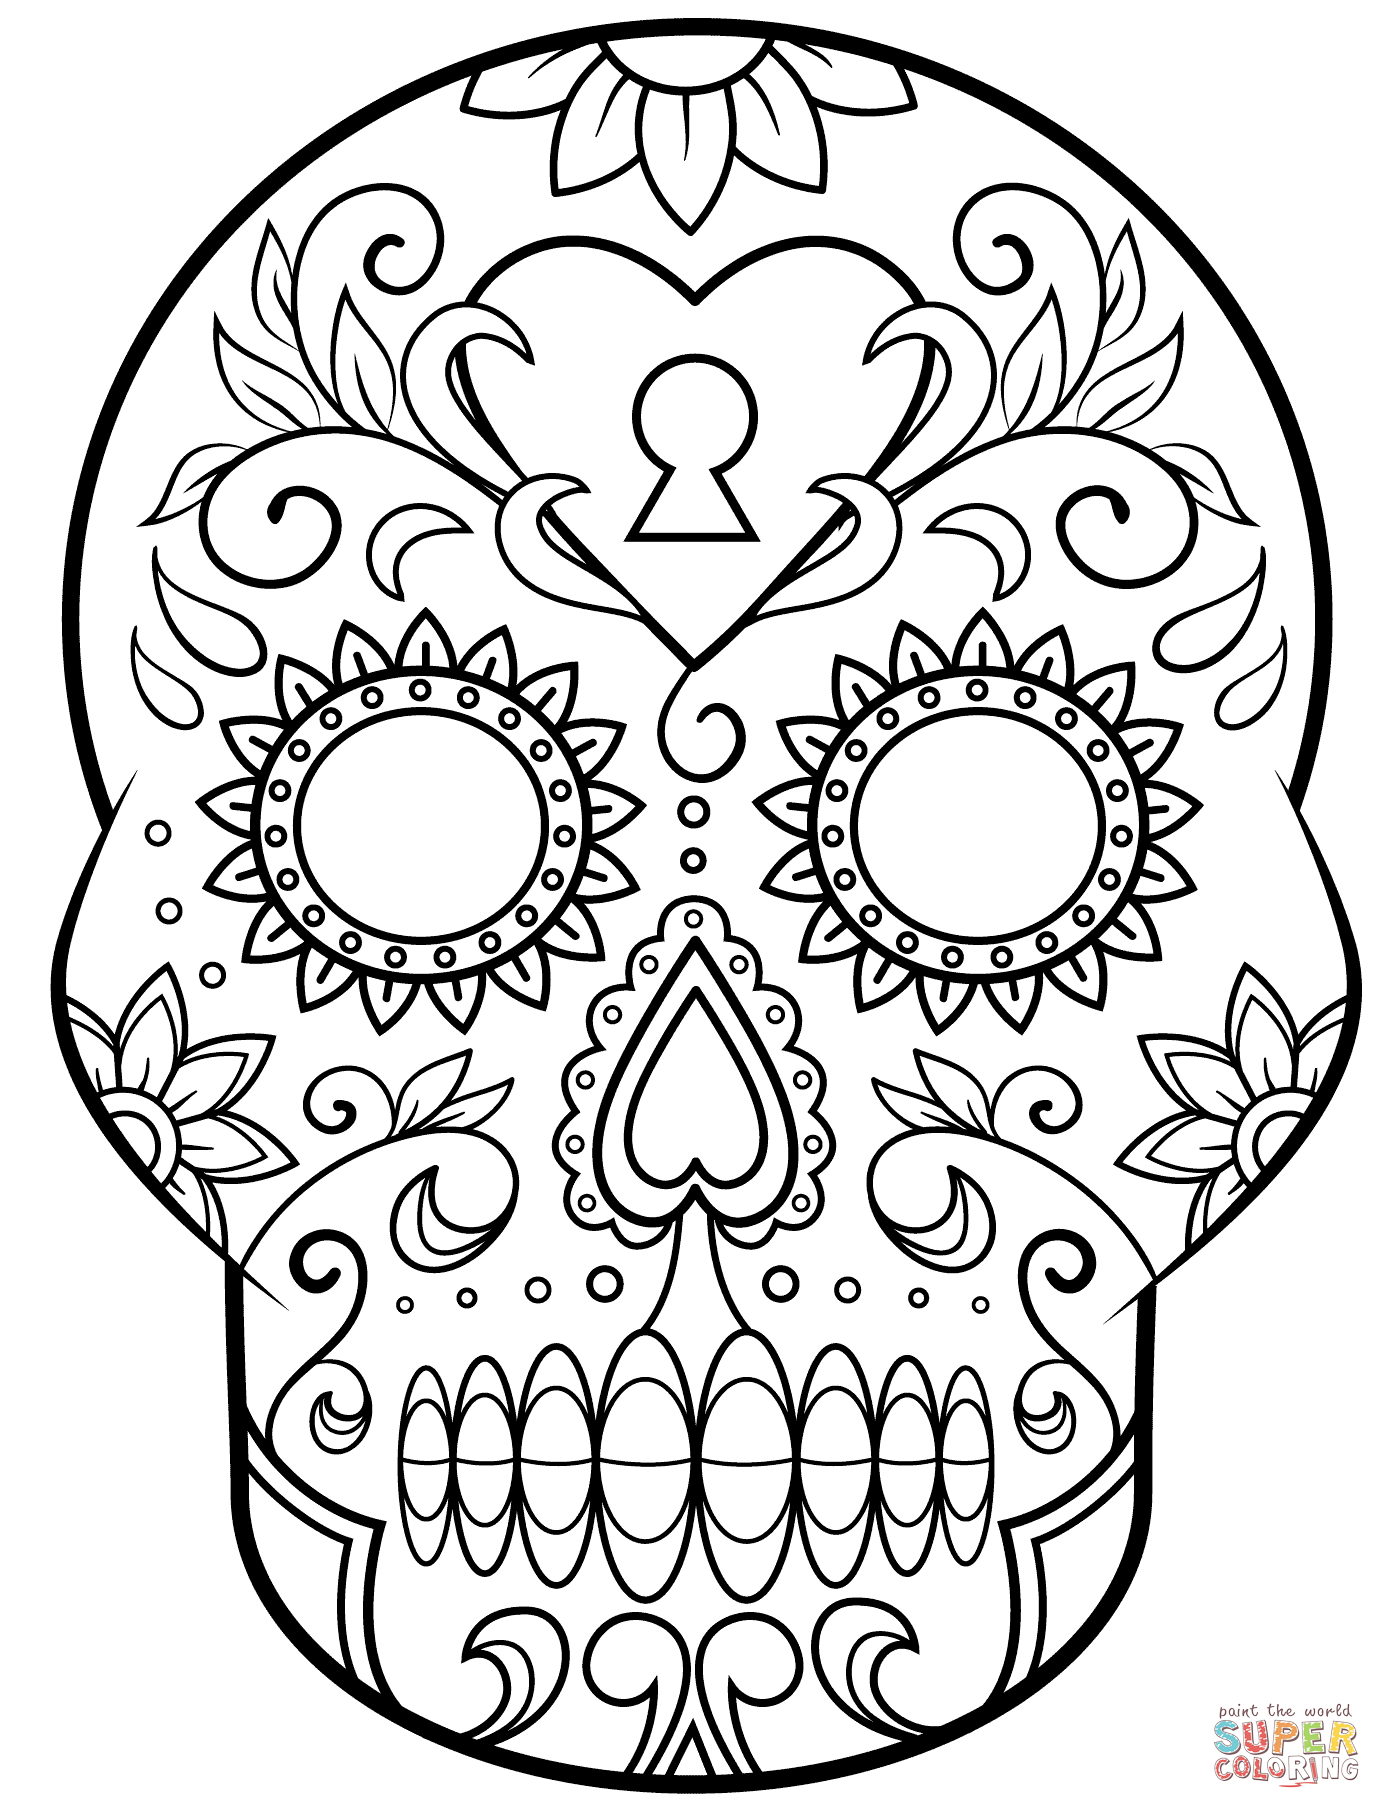 day of the dead template 17 best photos of day of dead skull template day of the day dead template the of